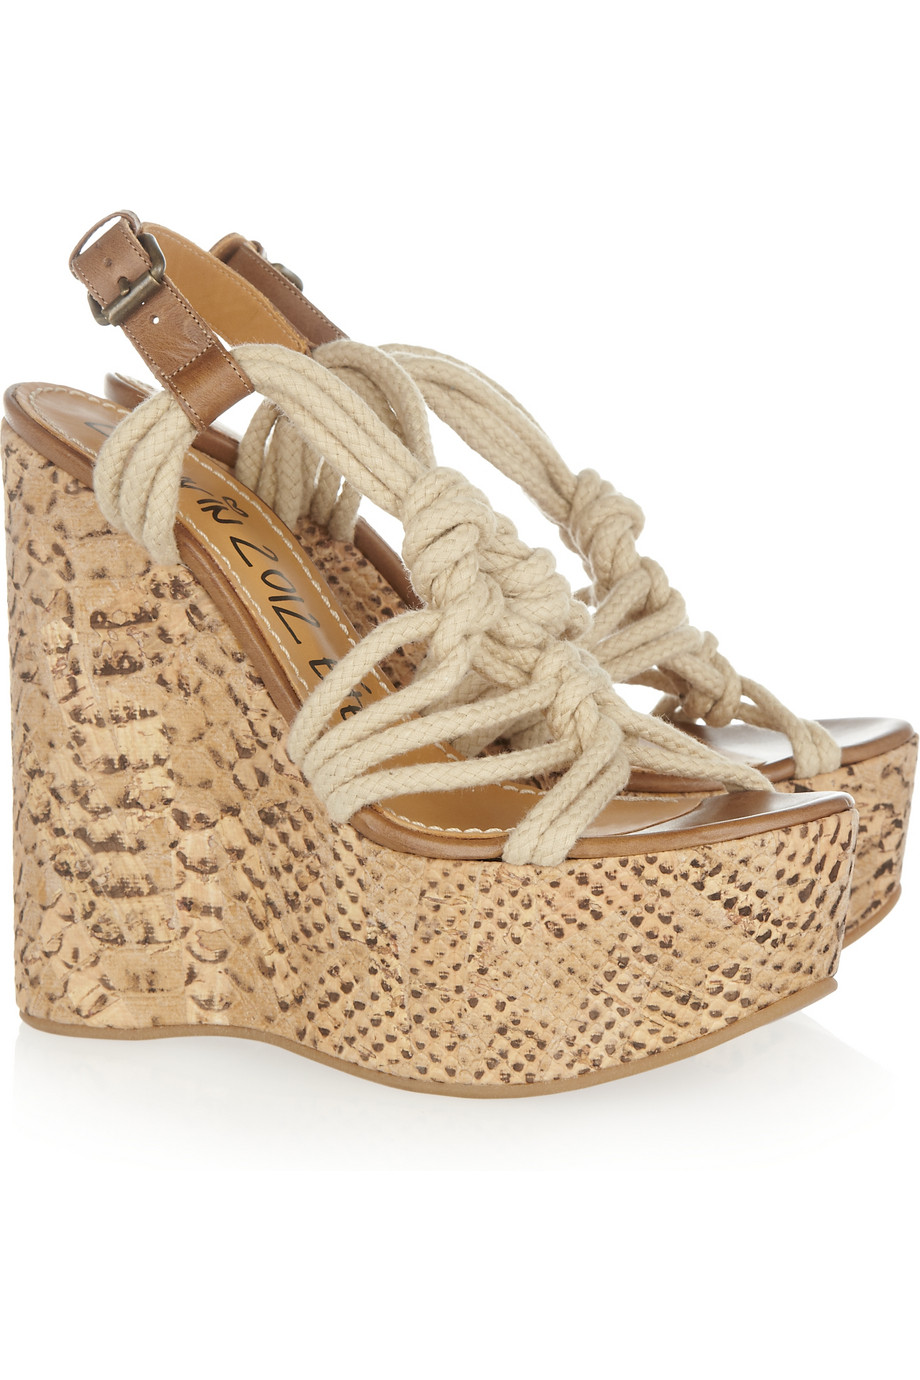 e94741678 Lyst - Lanvin Rope and Snake-print Cork Wedge Sandals